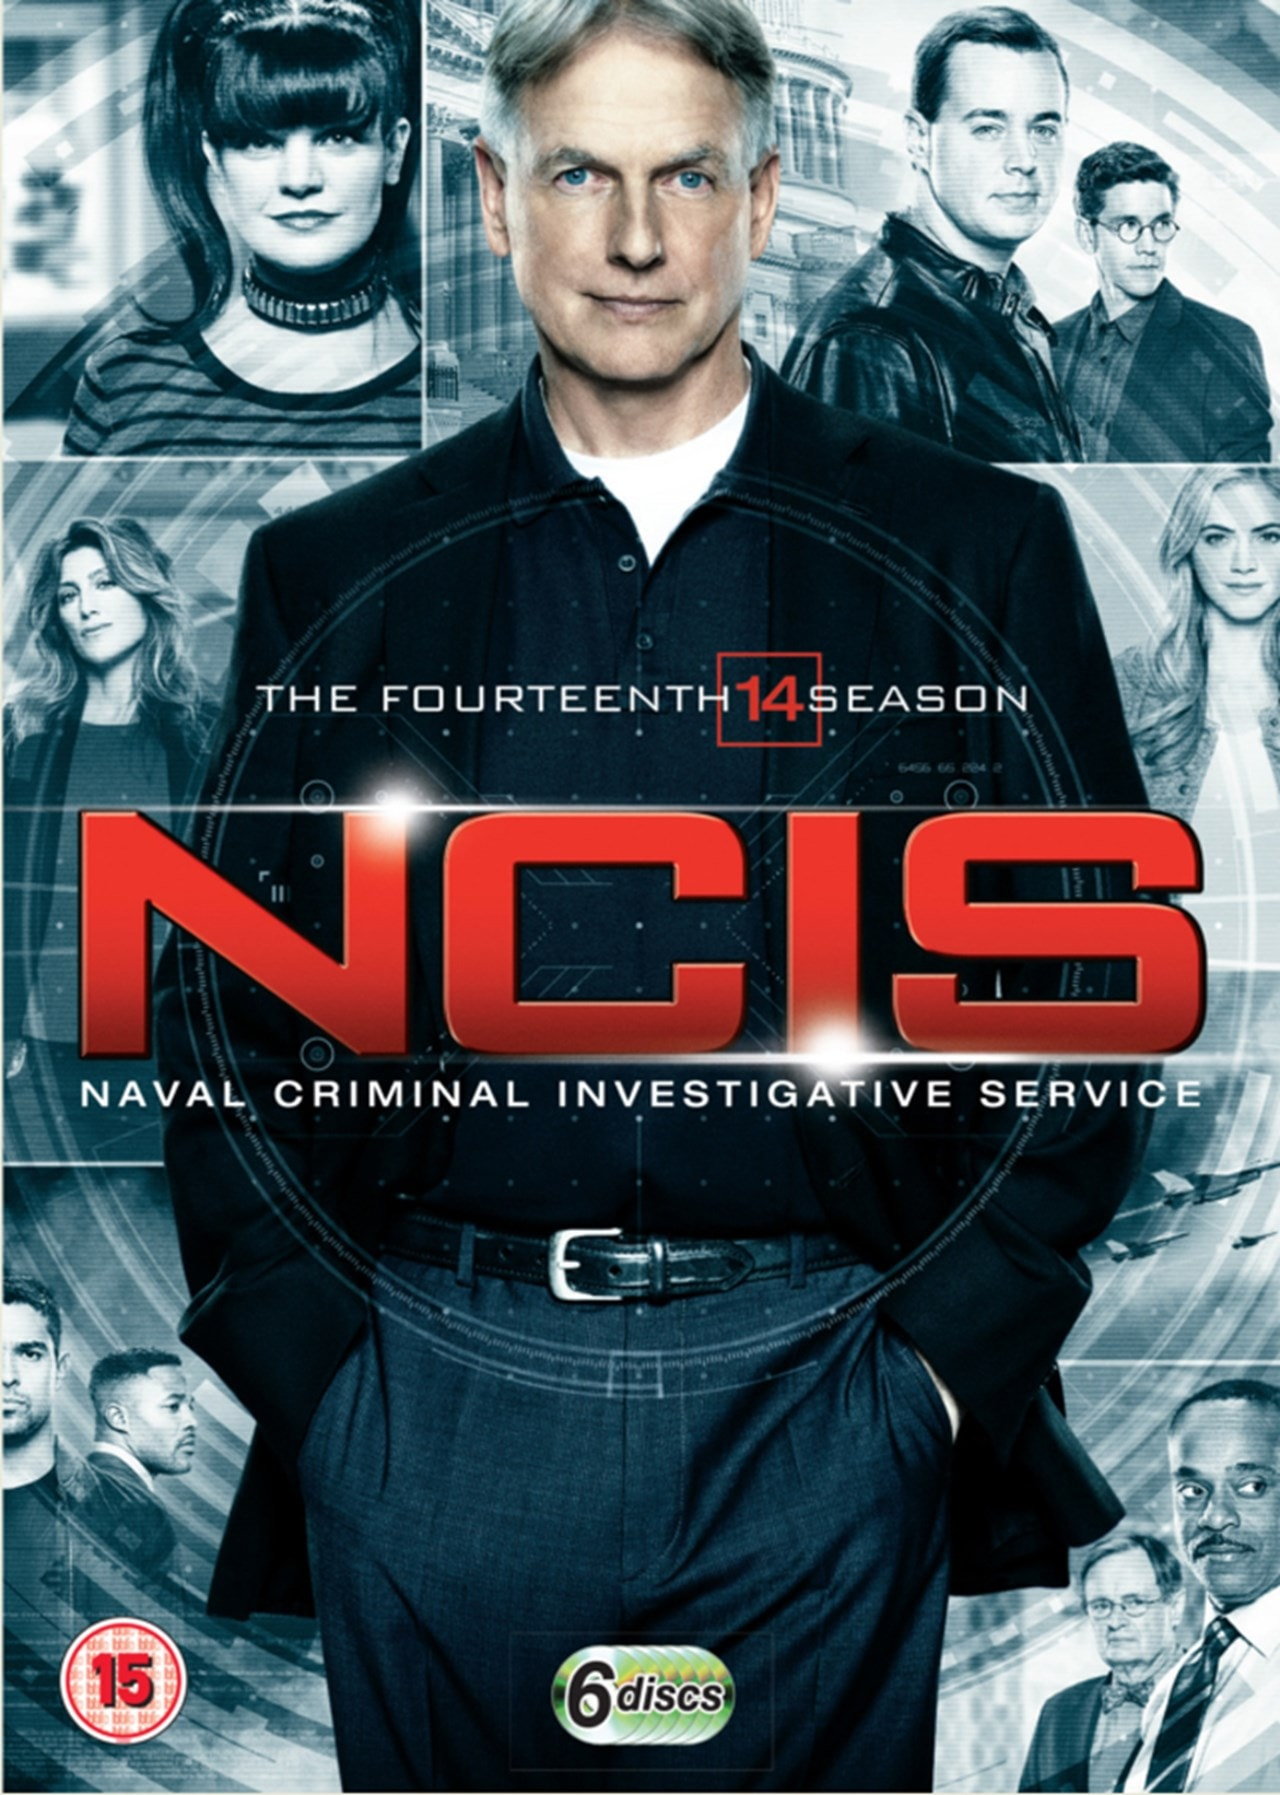 NCIS: The Fourteenth Season - 1